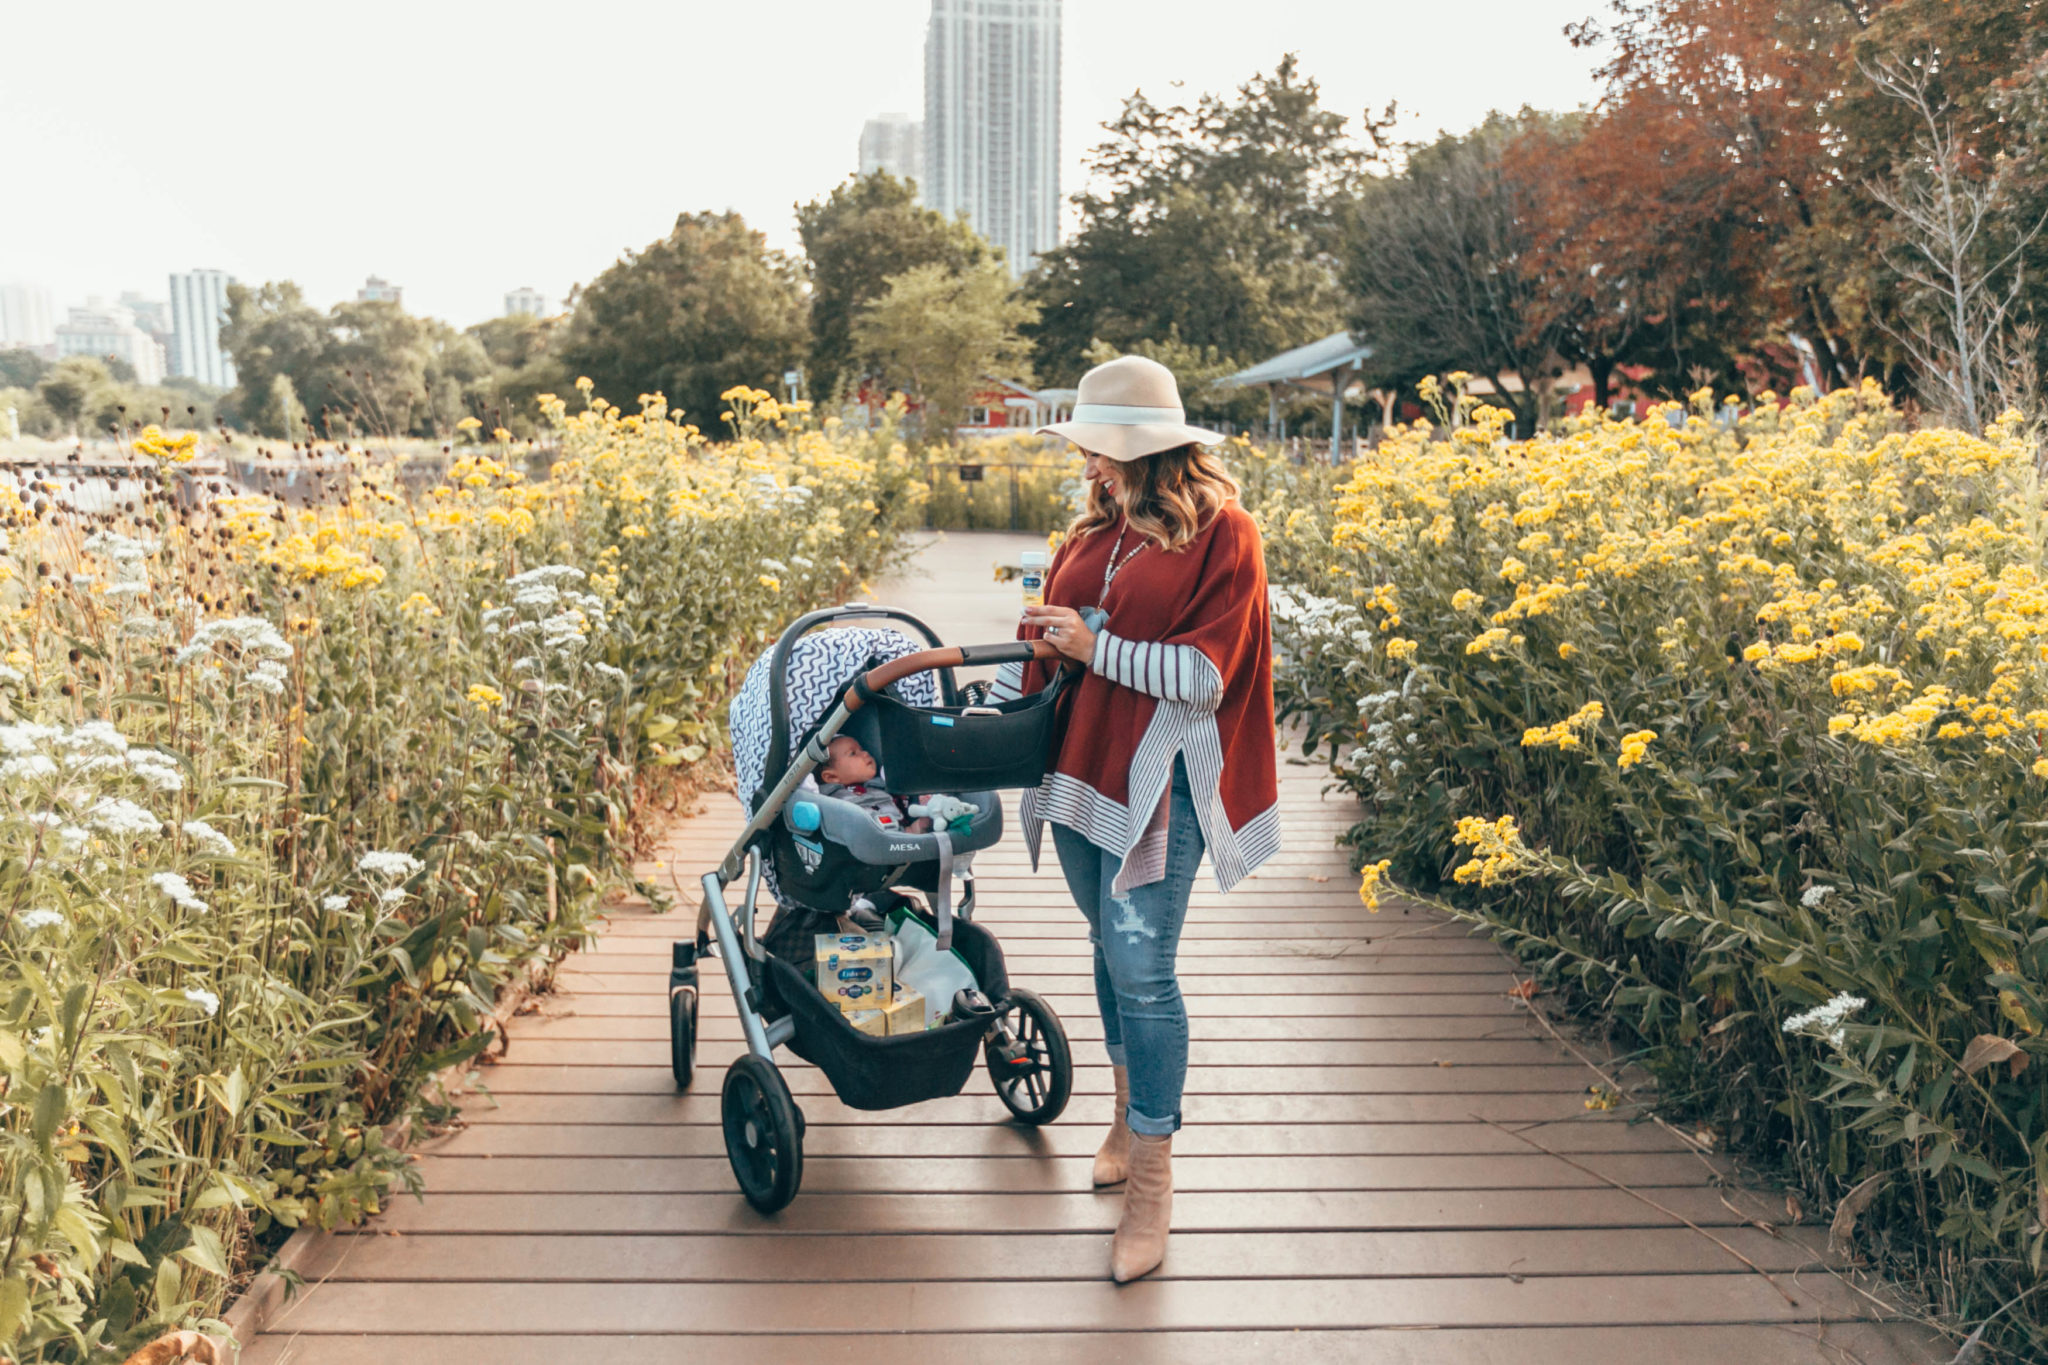 Enfamil NeuroPro Infant Formula Is My Baby Formula Choice by popular Chicago mom blog, Glass of Glam: image of a mom pushing her baby in a stroller outside and holding a bottle of Enfamil NeuroPro Infant Formula.